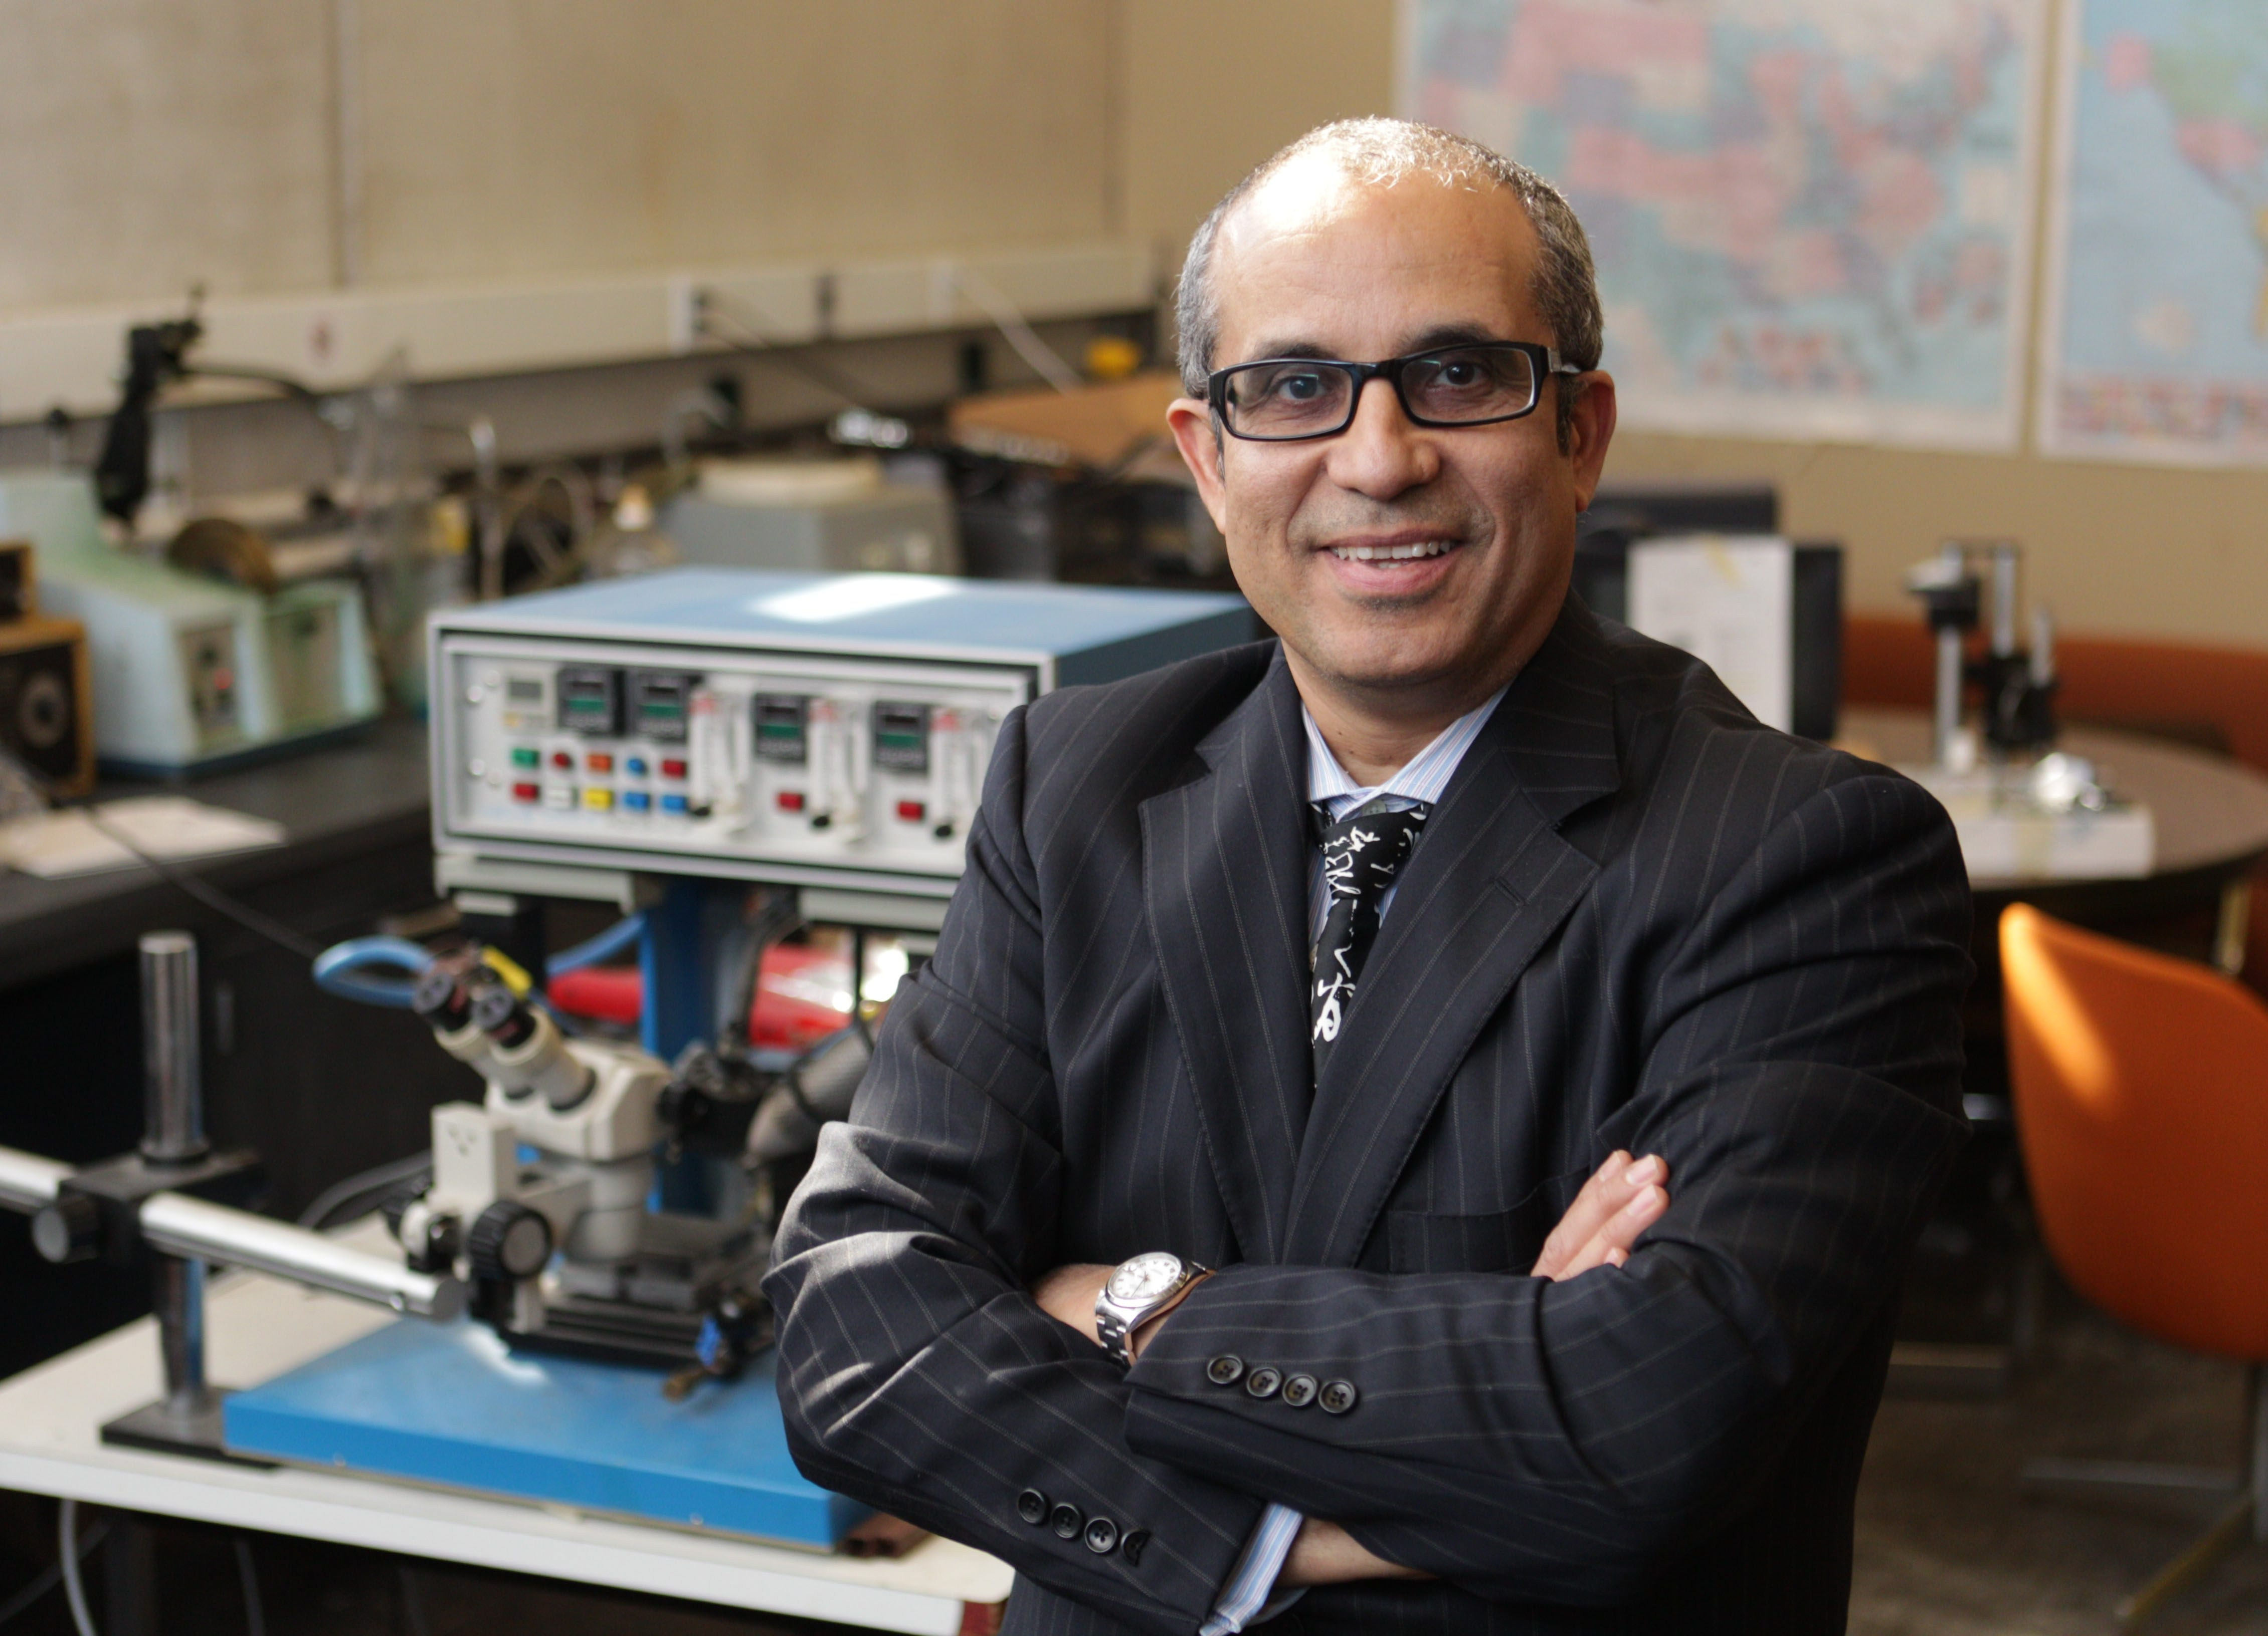 Cemal Basaran, director of the Electronics Packaging Laboratory at UB, sees metals being replaced for electrical uses.